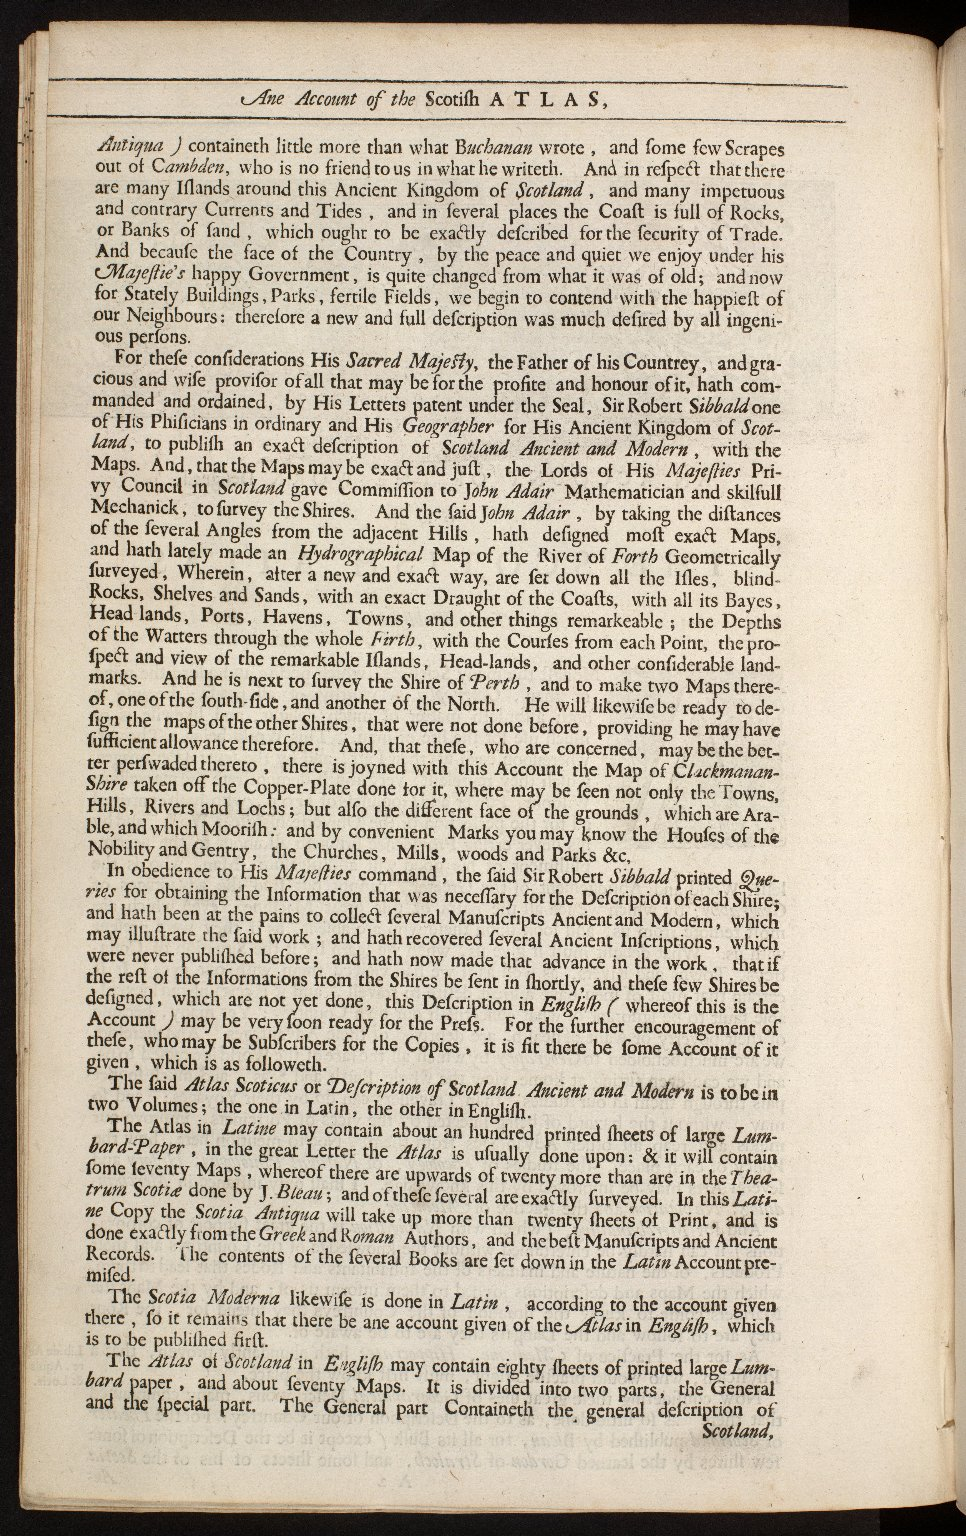 An account of the Scottish atlas or the description of Scotland ancient and modern. [10 of 13]